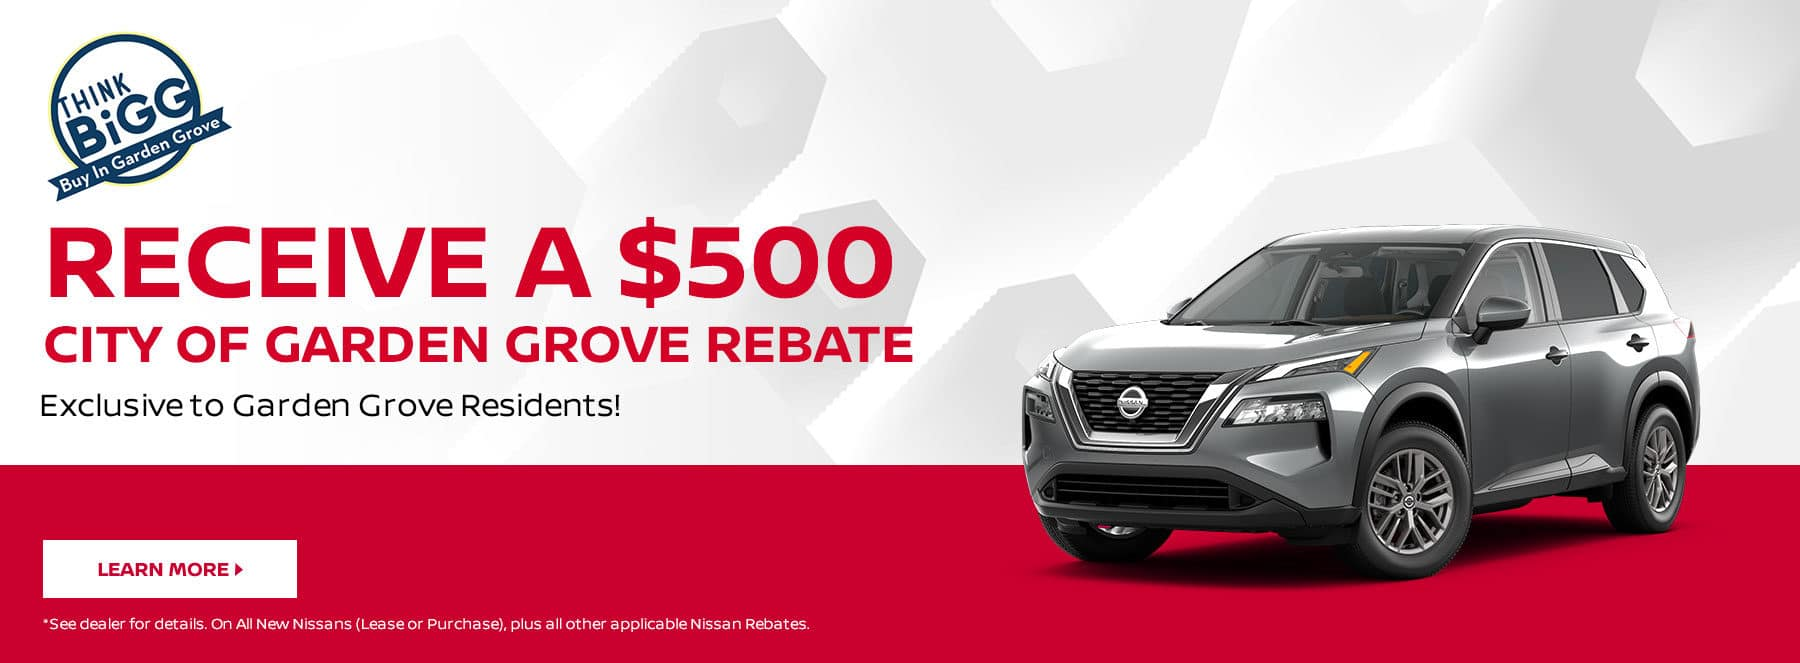 Buy In Garden Grove!, Receive a $500 Nissan Rebate, Exclusive to Garden Grove Residents!